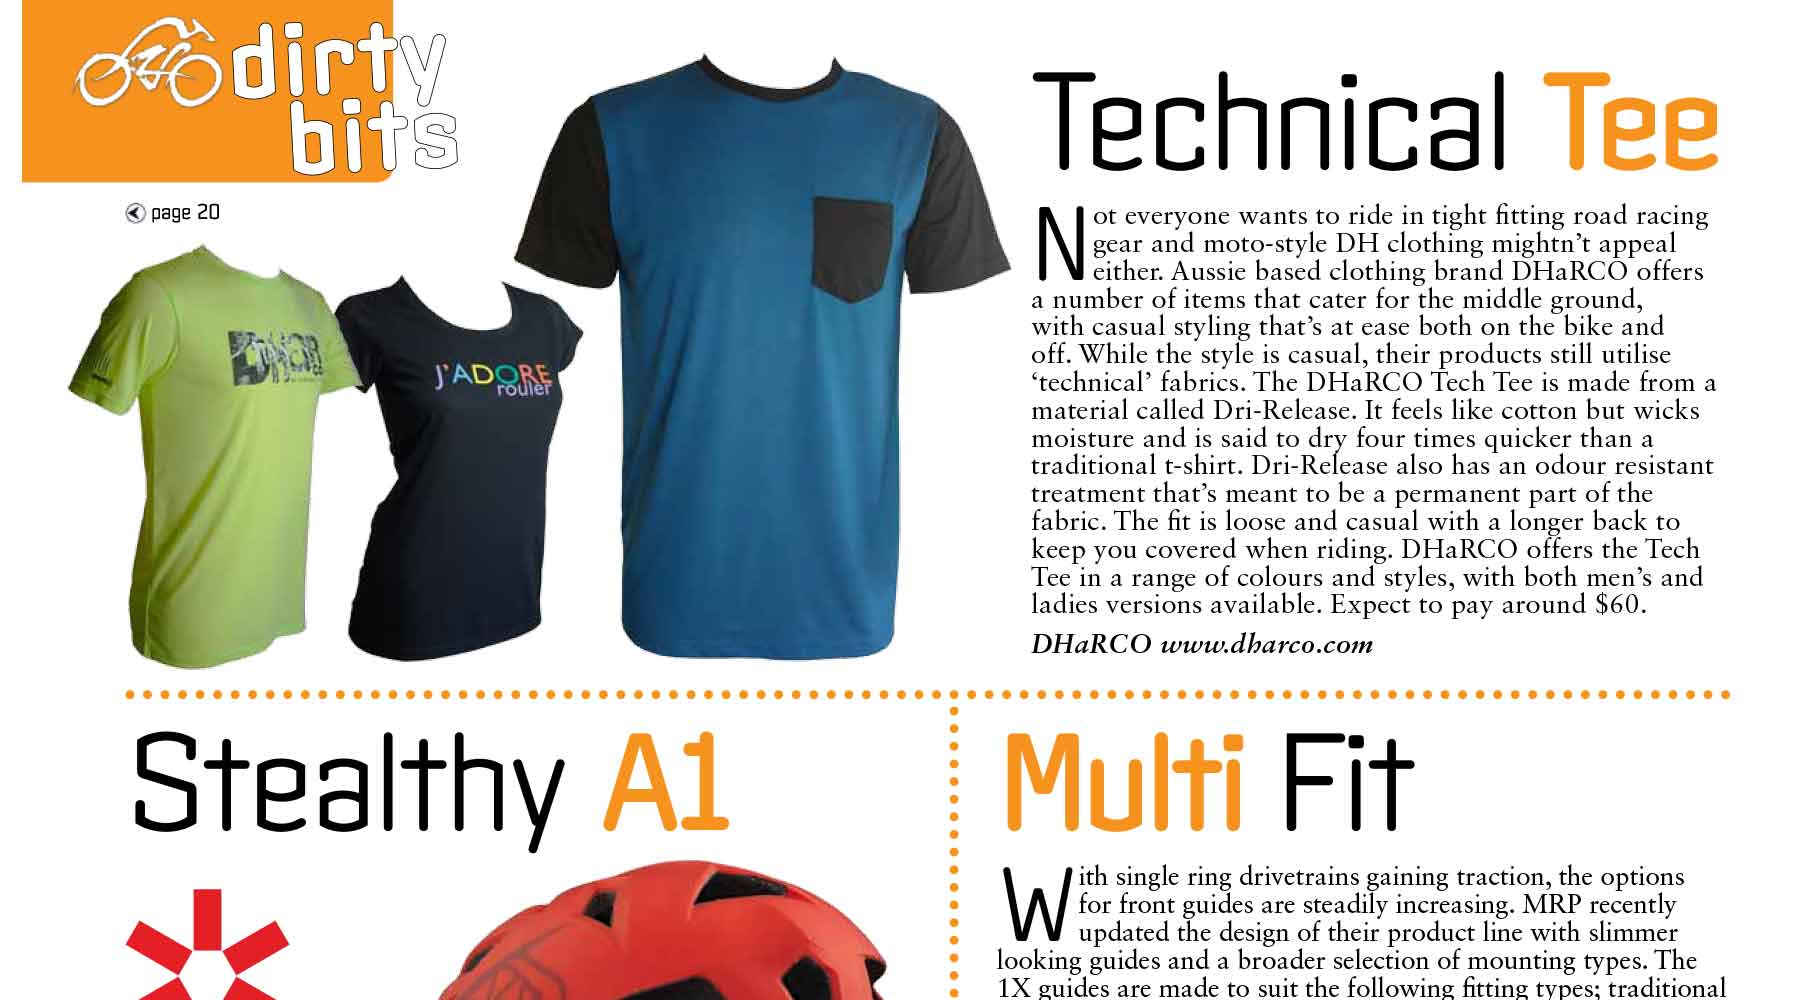 Mountain Biking Australia features the DHaRCO Tech Tee